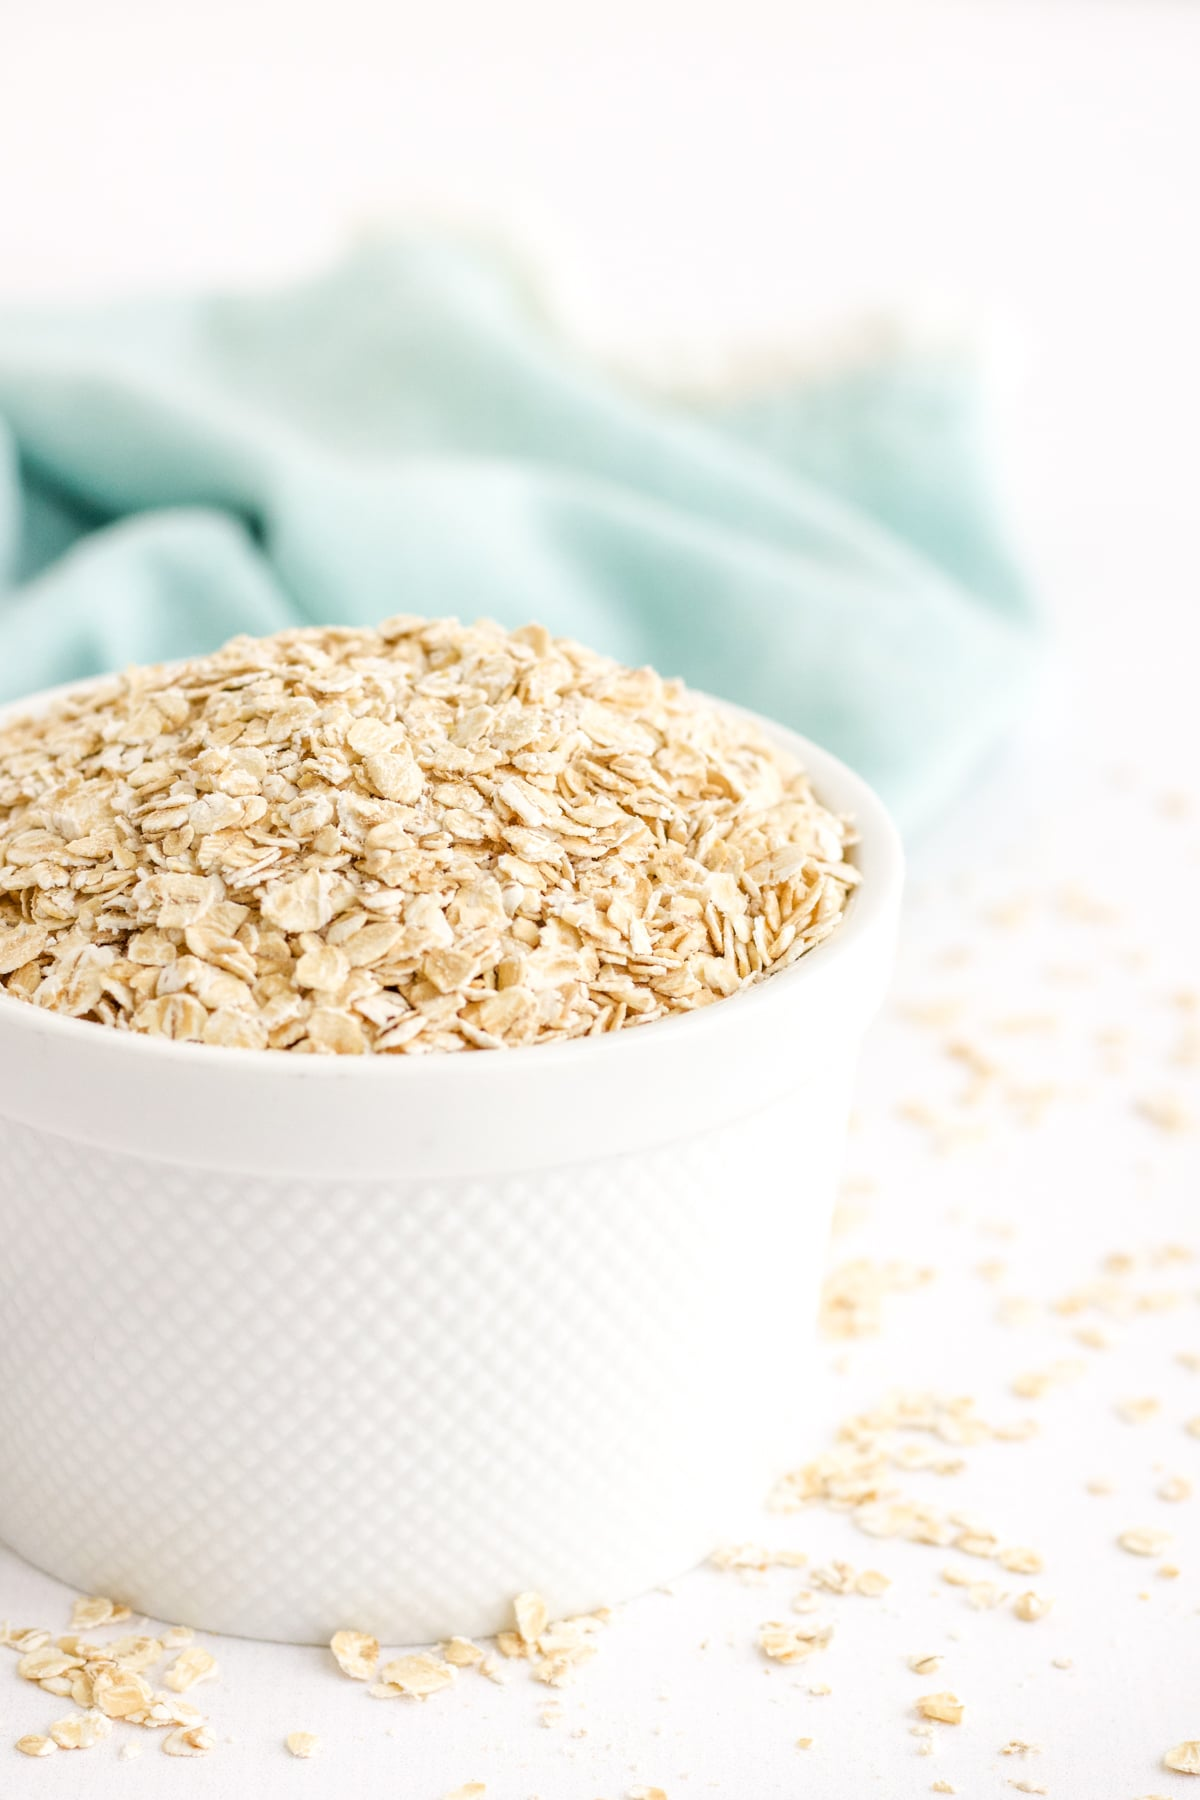 Rolled oats in a white bowl with a teal linen in the back to show how to make oat flour at home.